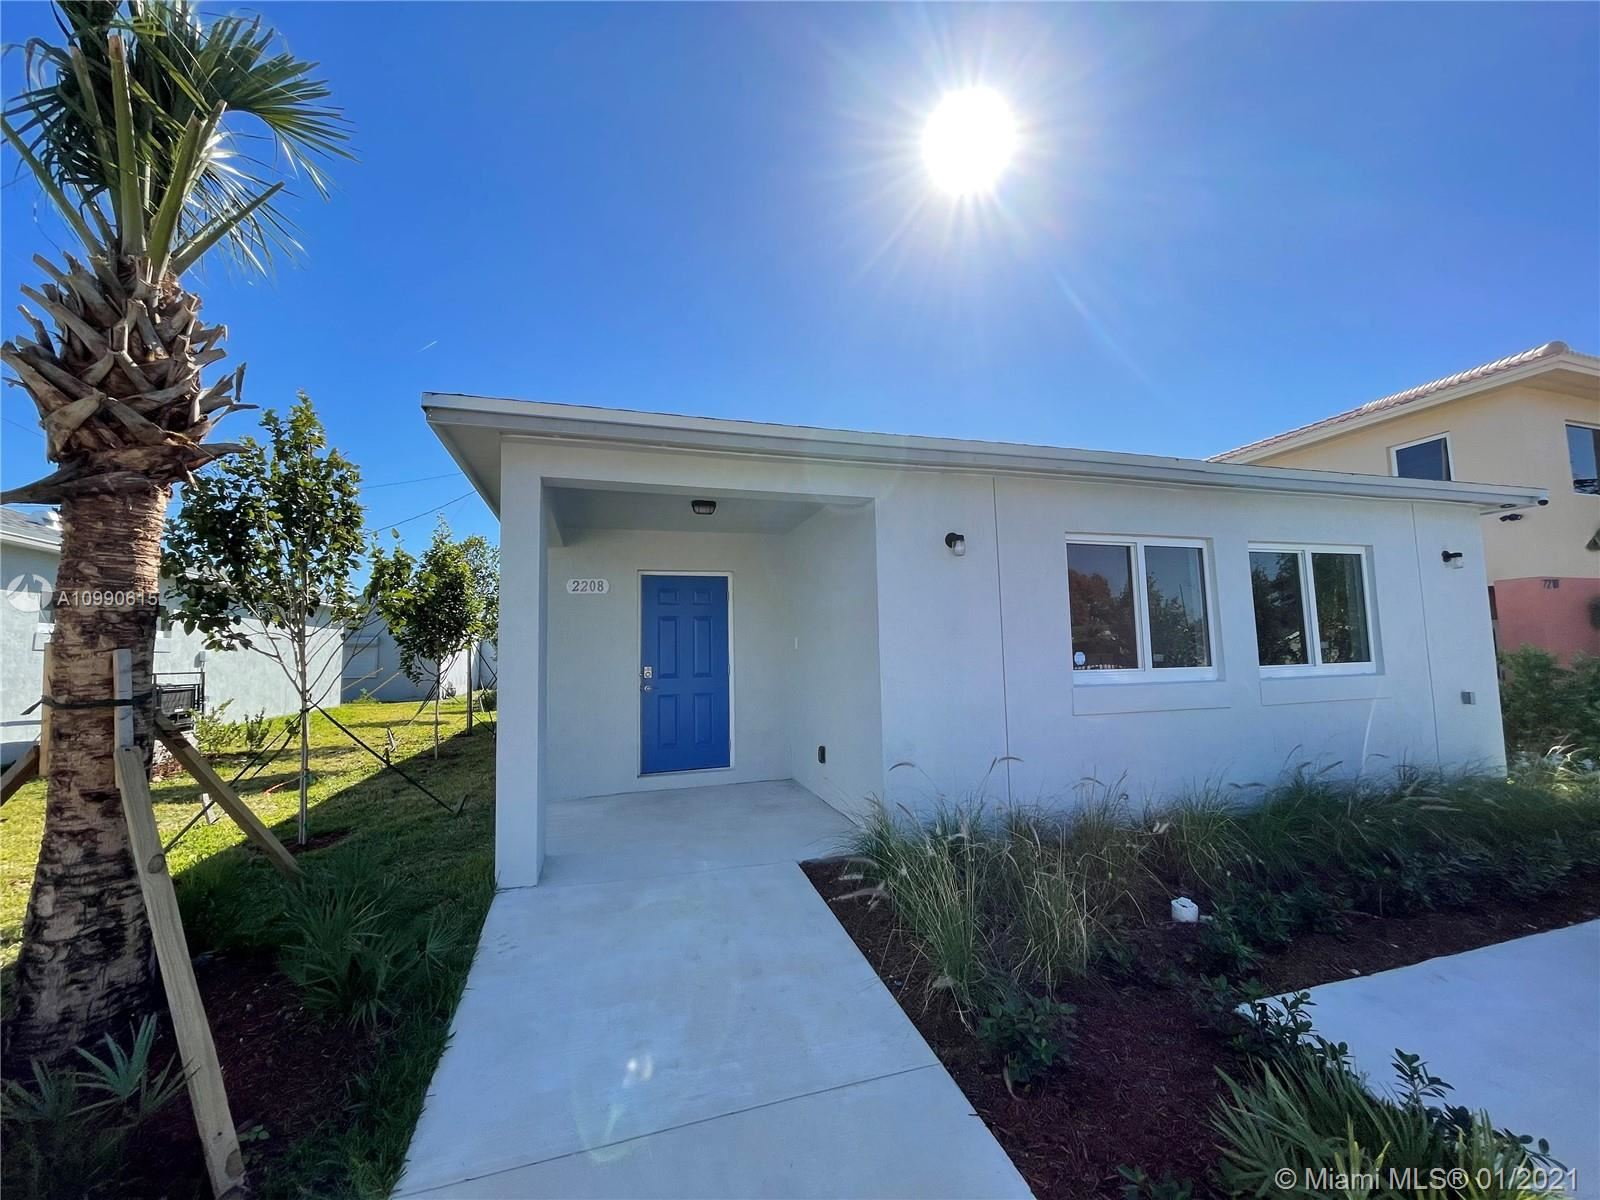 2208 Freedom St, Hollywood, FL 33020 - #: A10990615